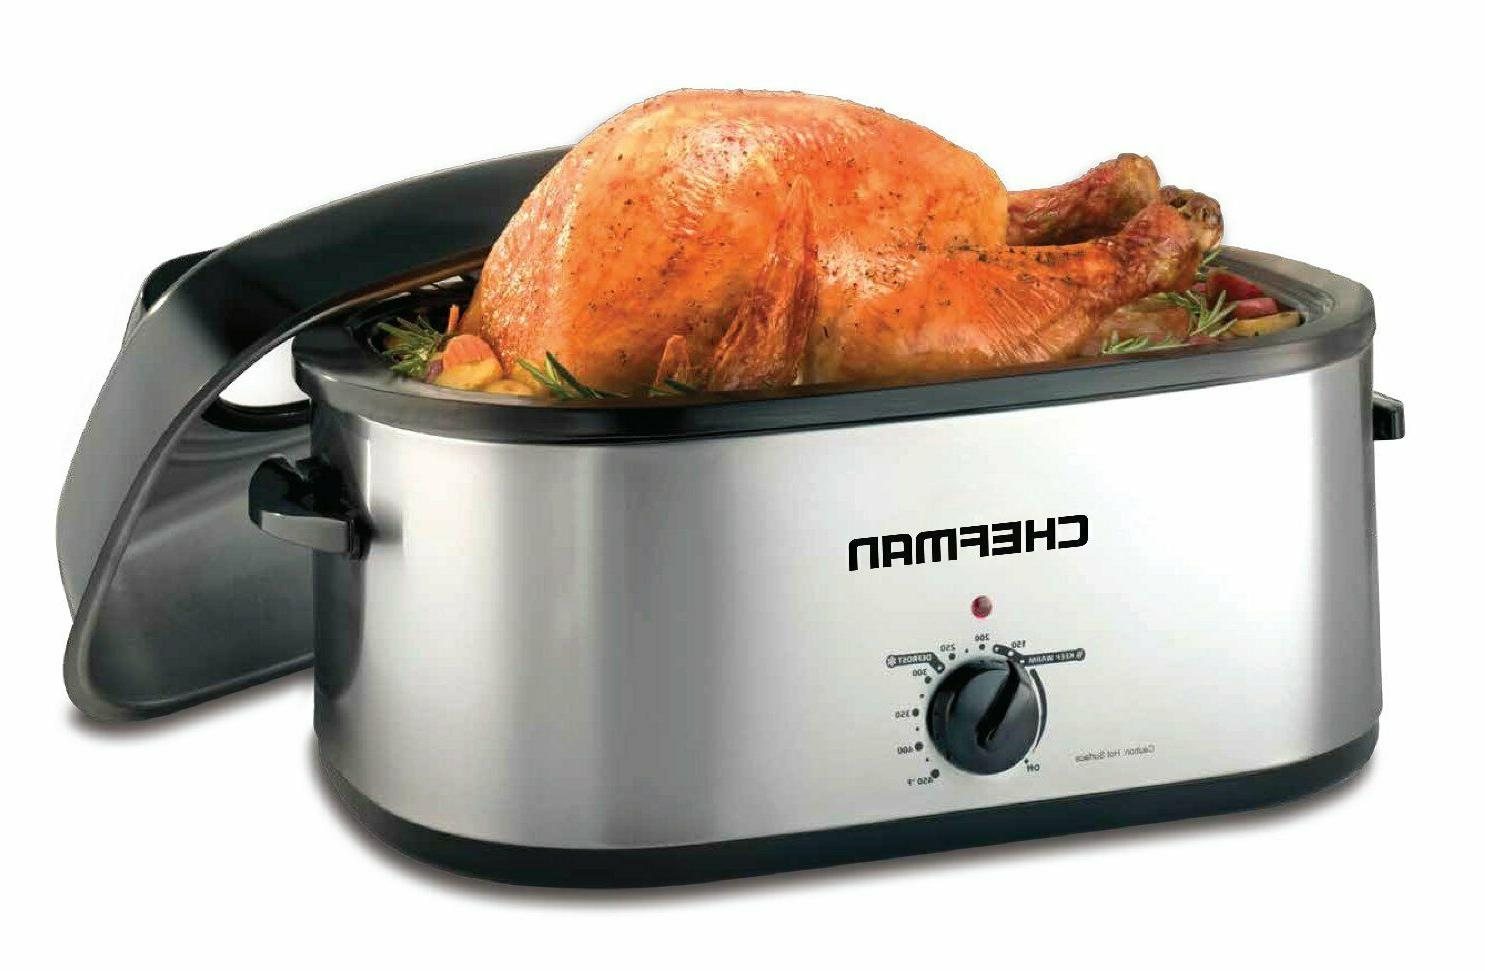 20 quart roaster oven slow cooker w